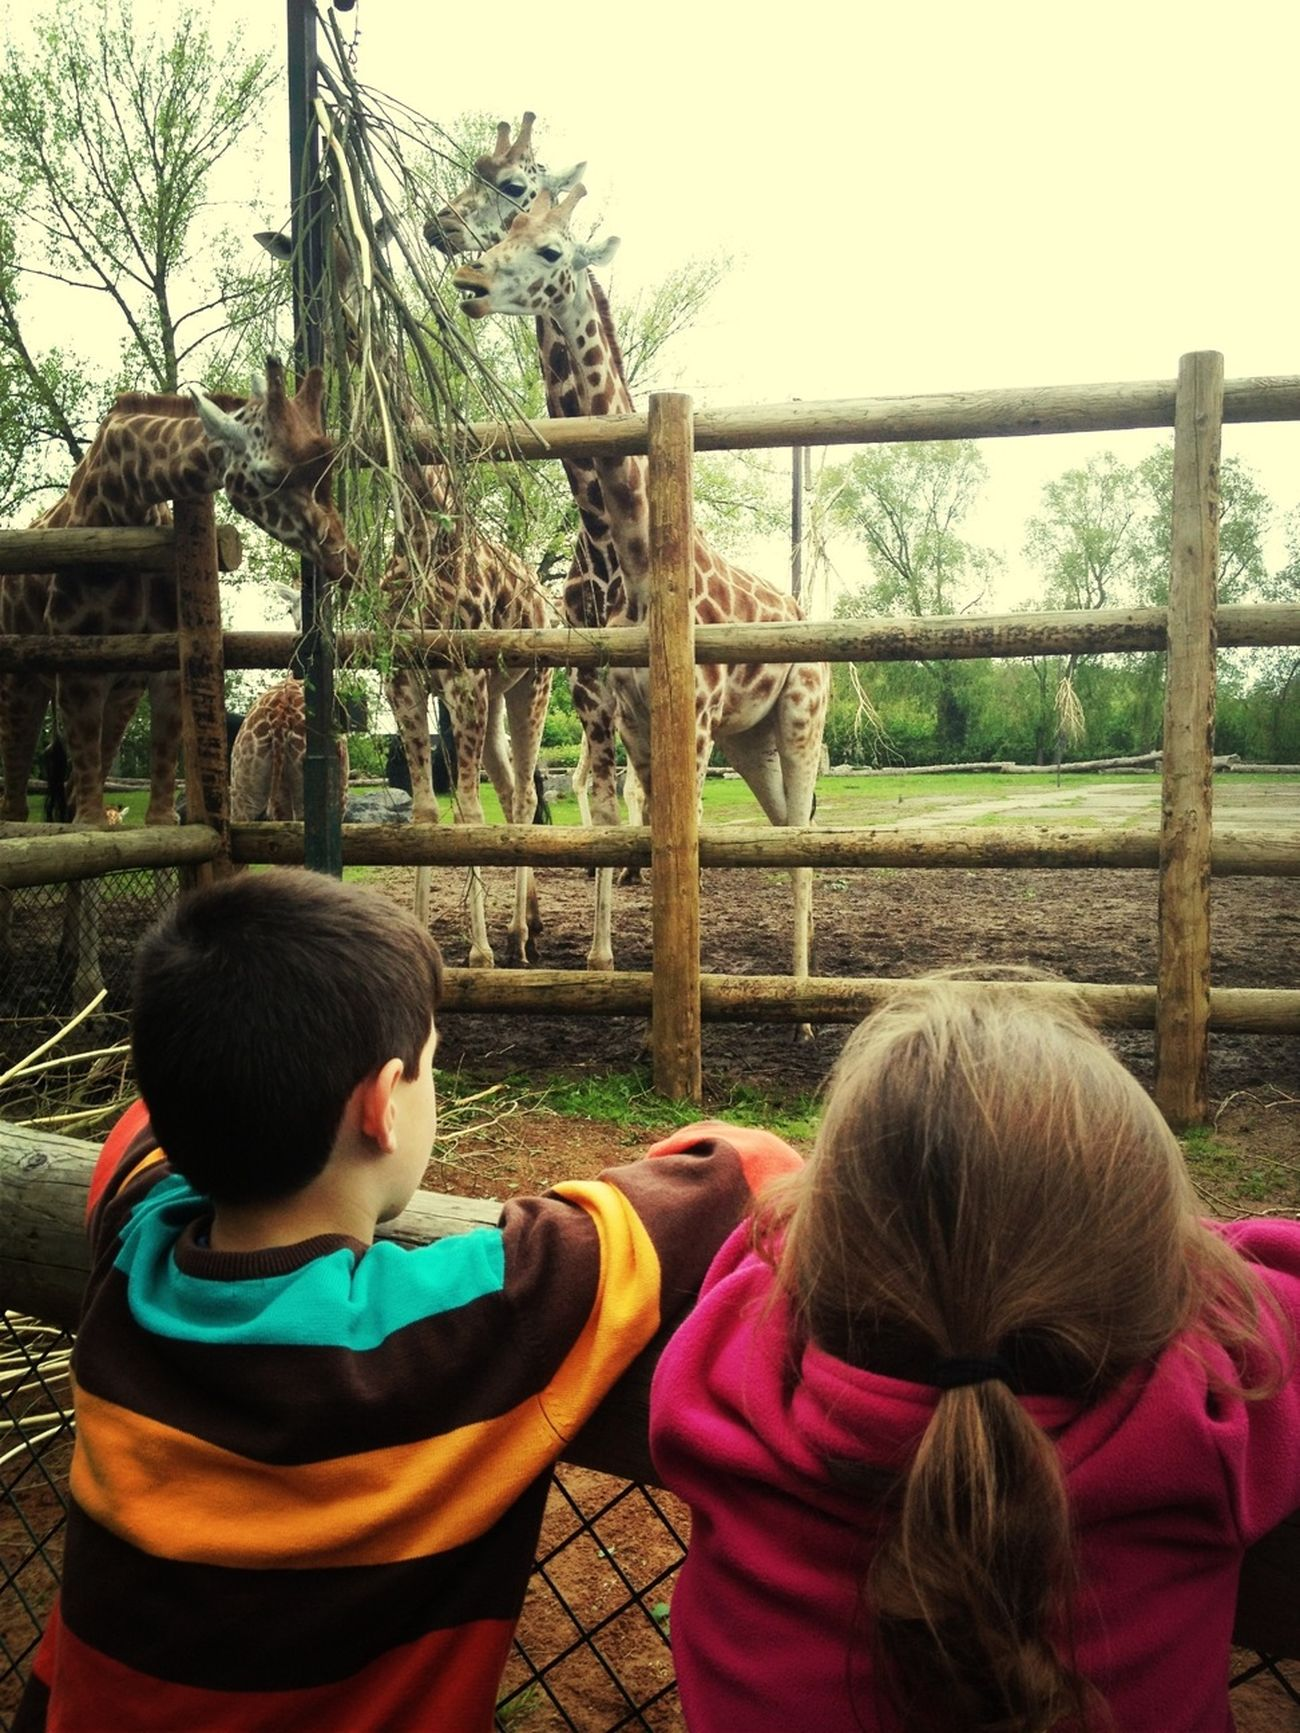 Checking Out The Giraffes